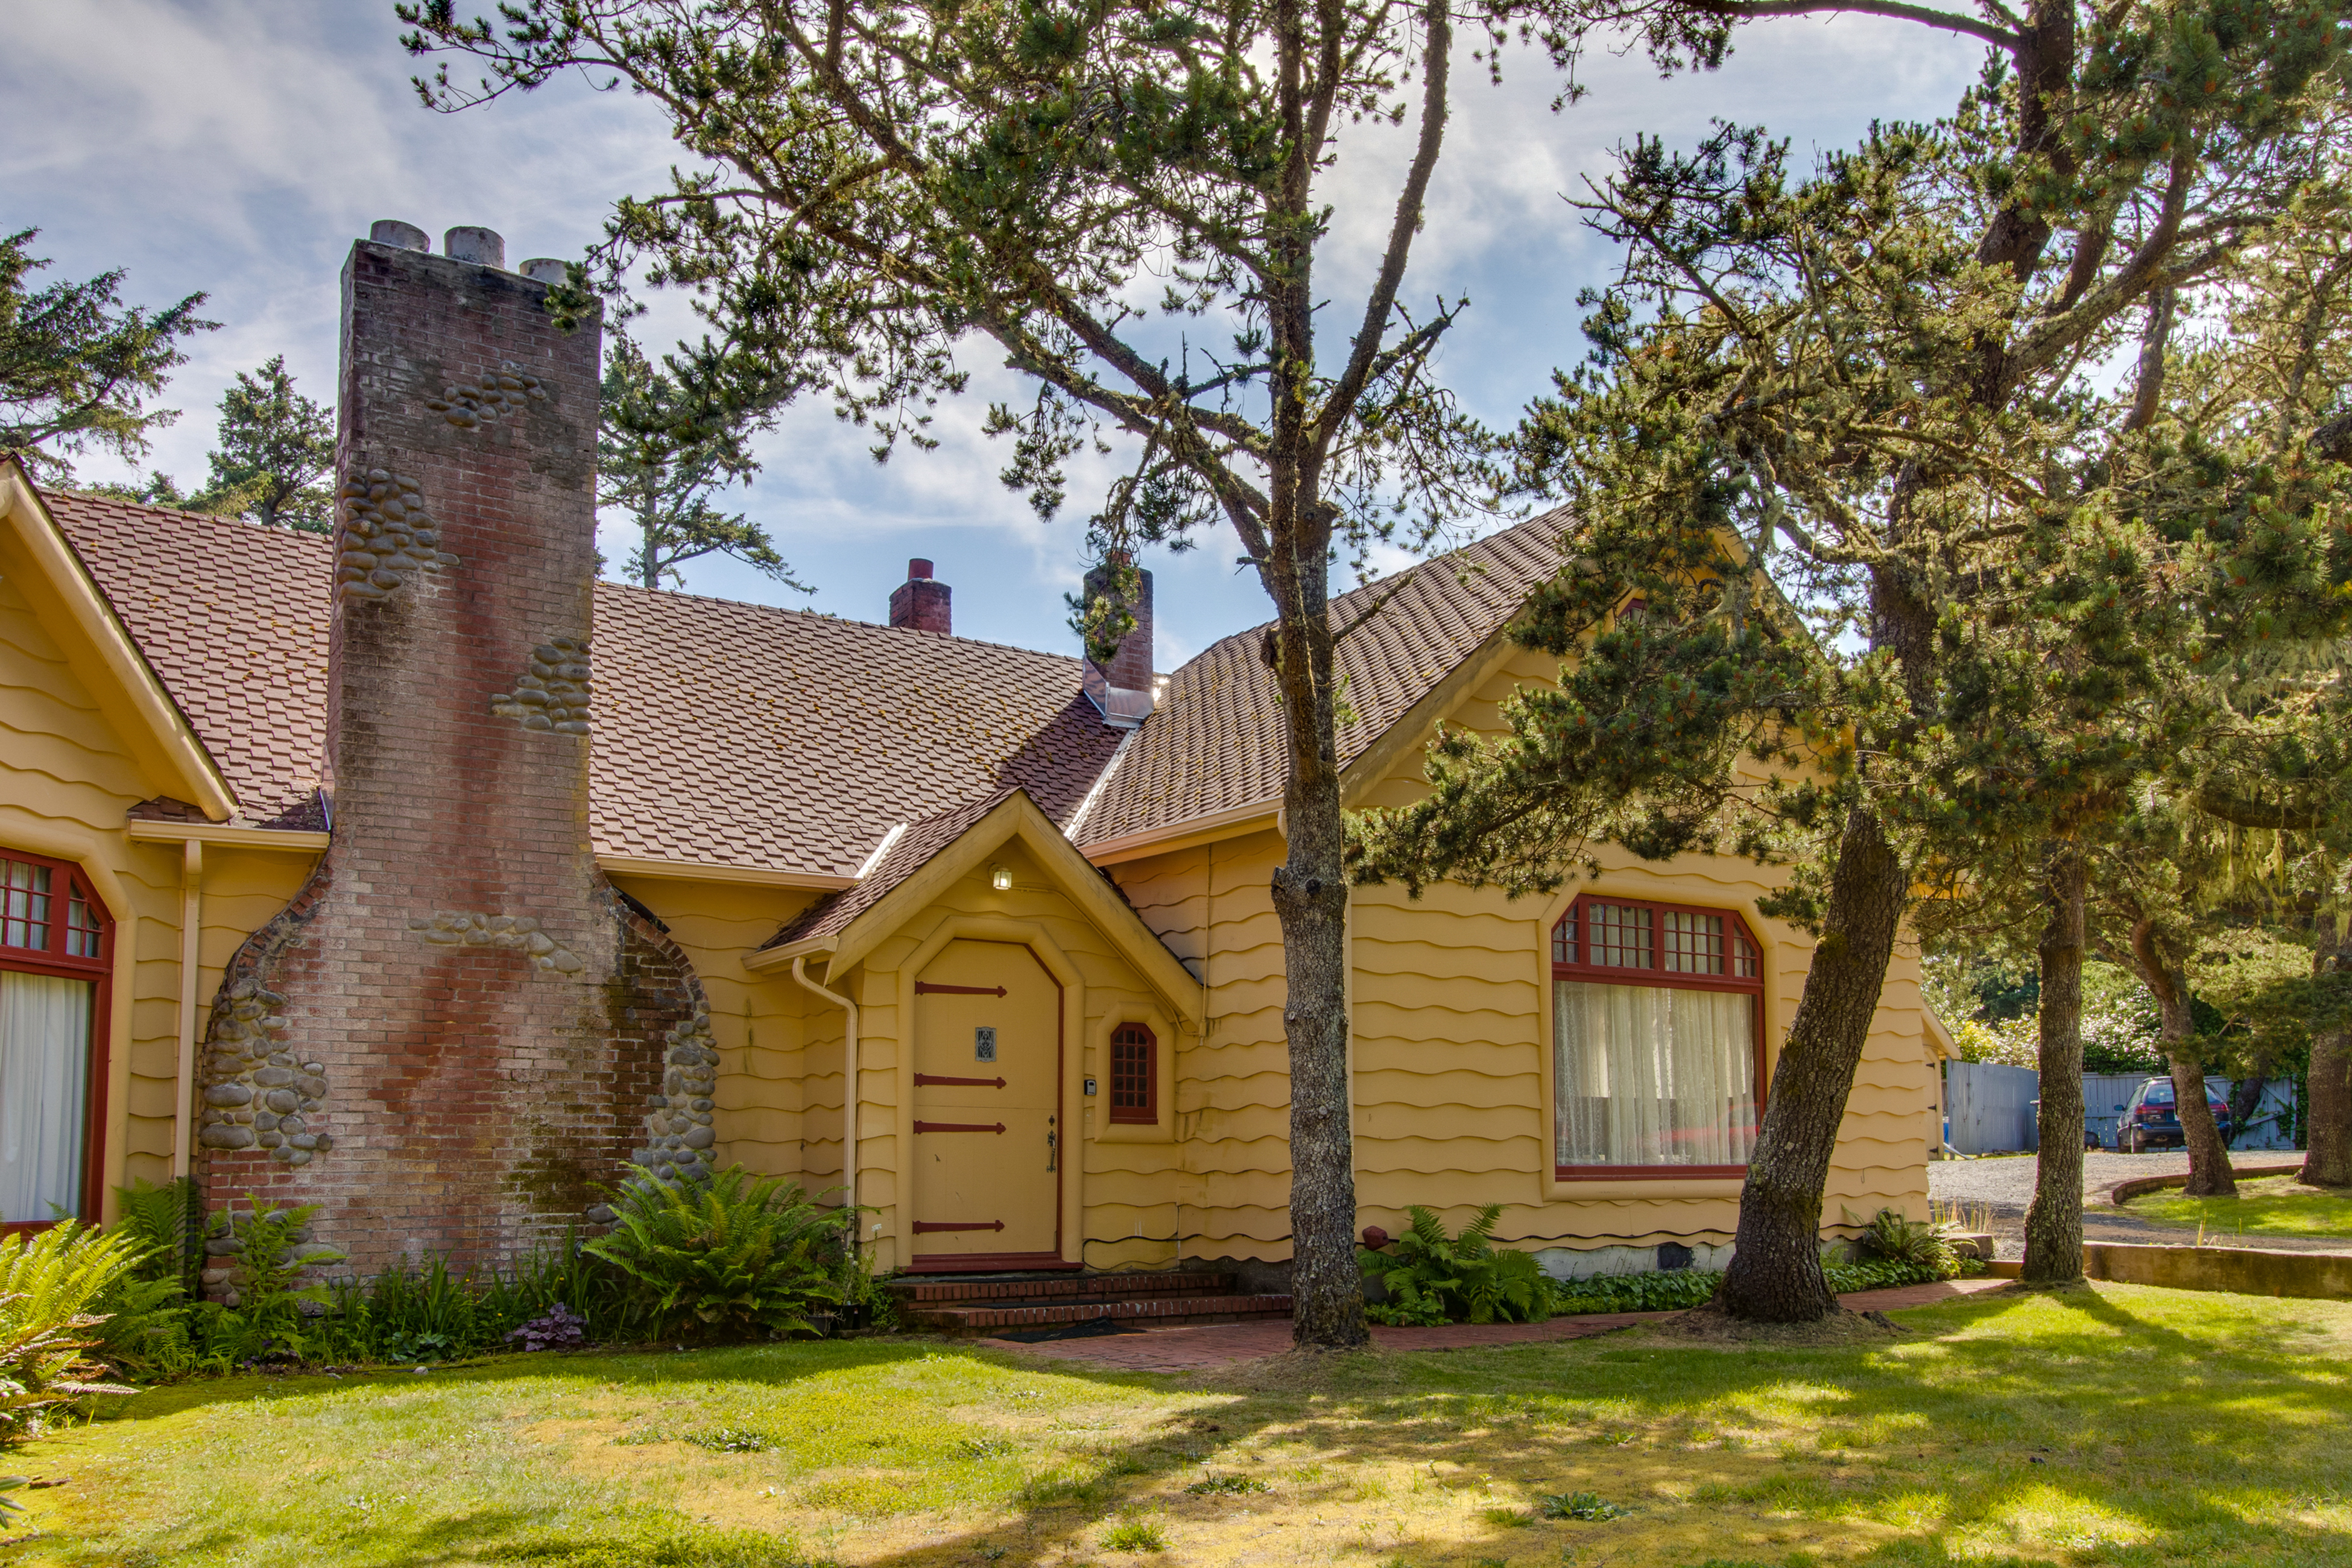 inn booking review oregon seaside overview vacation average cottage comfort rentals sand dollar beach comforter